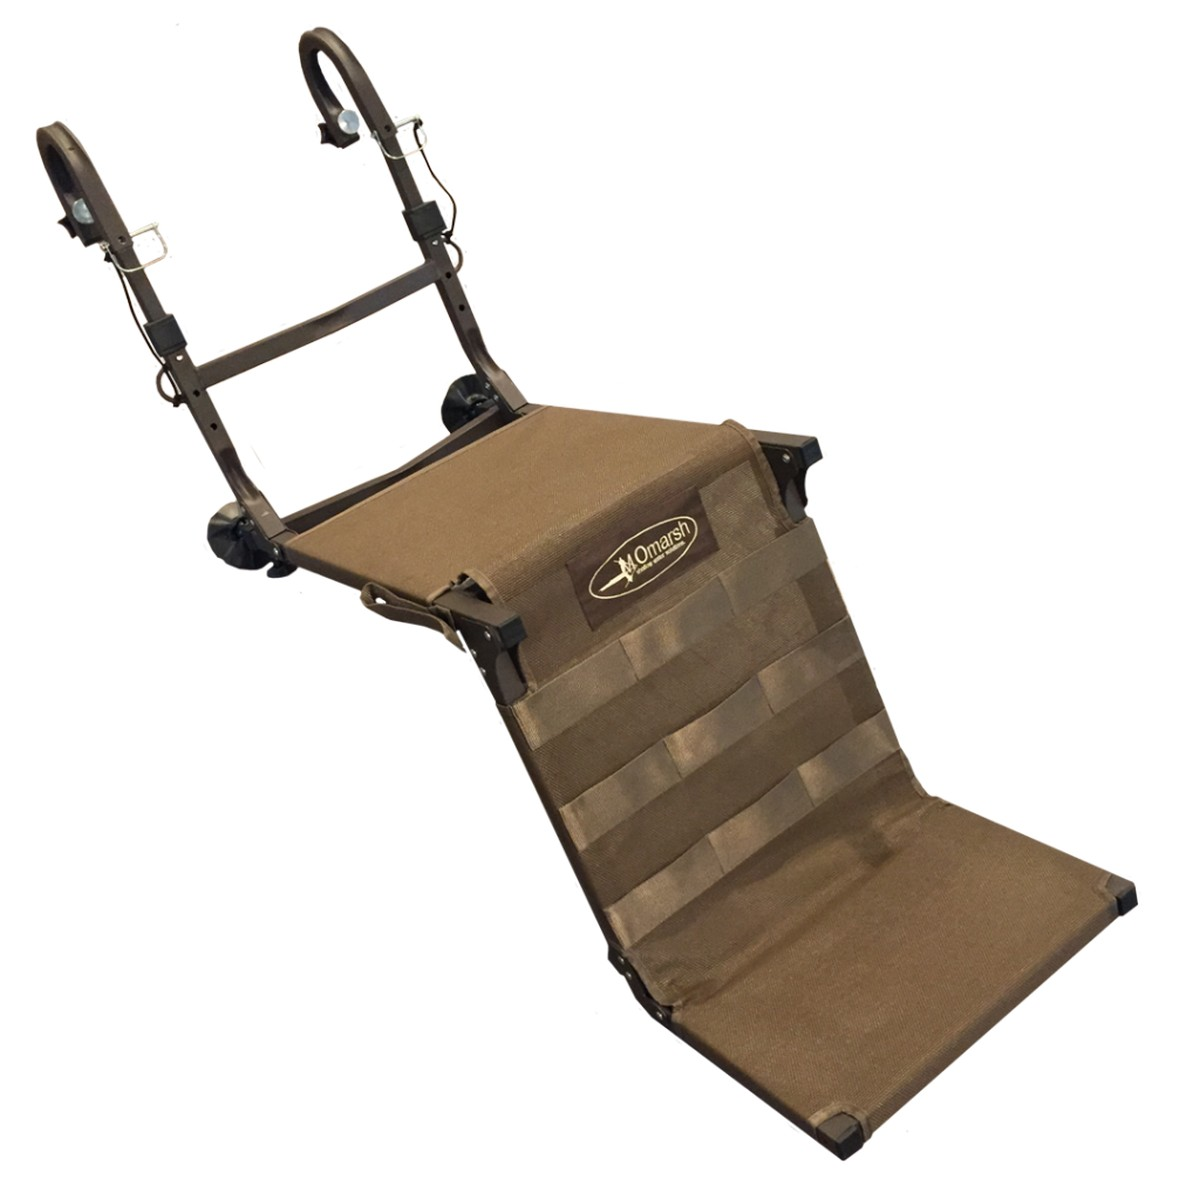 Dog Stands and Boat Ladders for Waterfowl Hunting